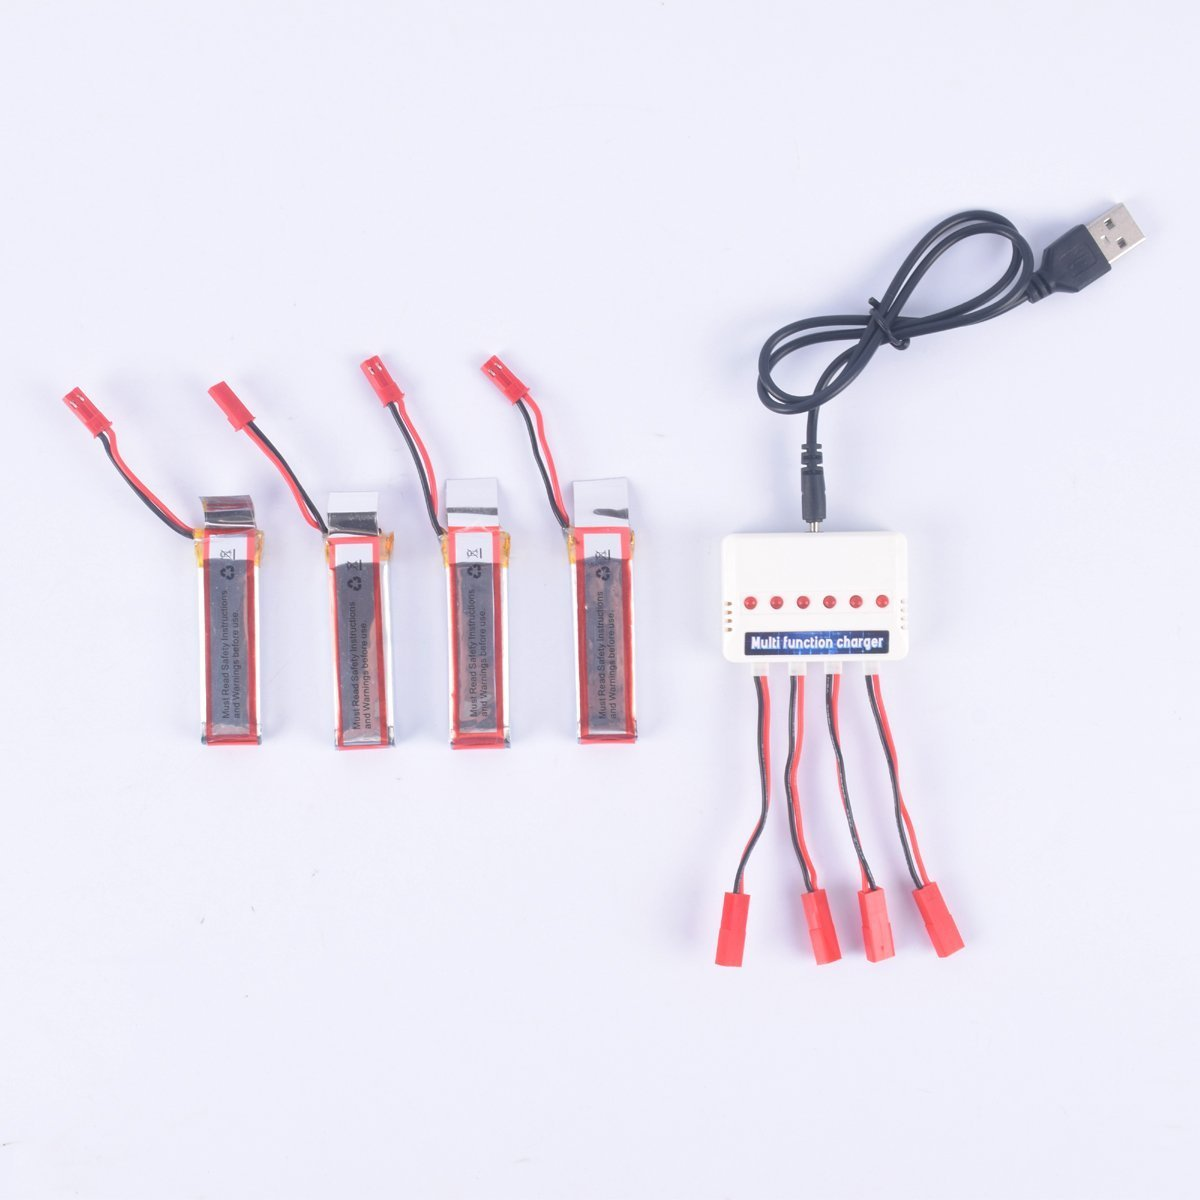 YouCute 4pcs 3.7V 500mAh official Battery and 1to6 charger for UDI U818A U818A-1 U818A HD U818A HD+ RC quadcopter drone spare parts